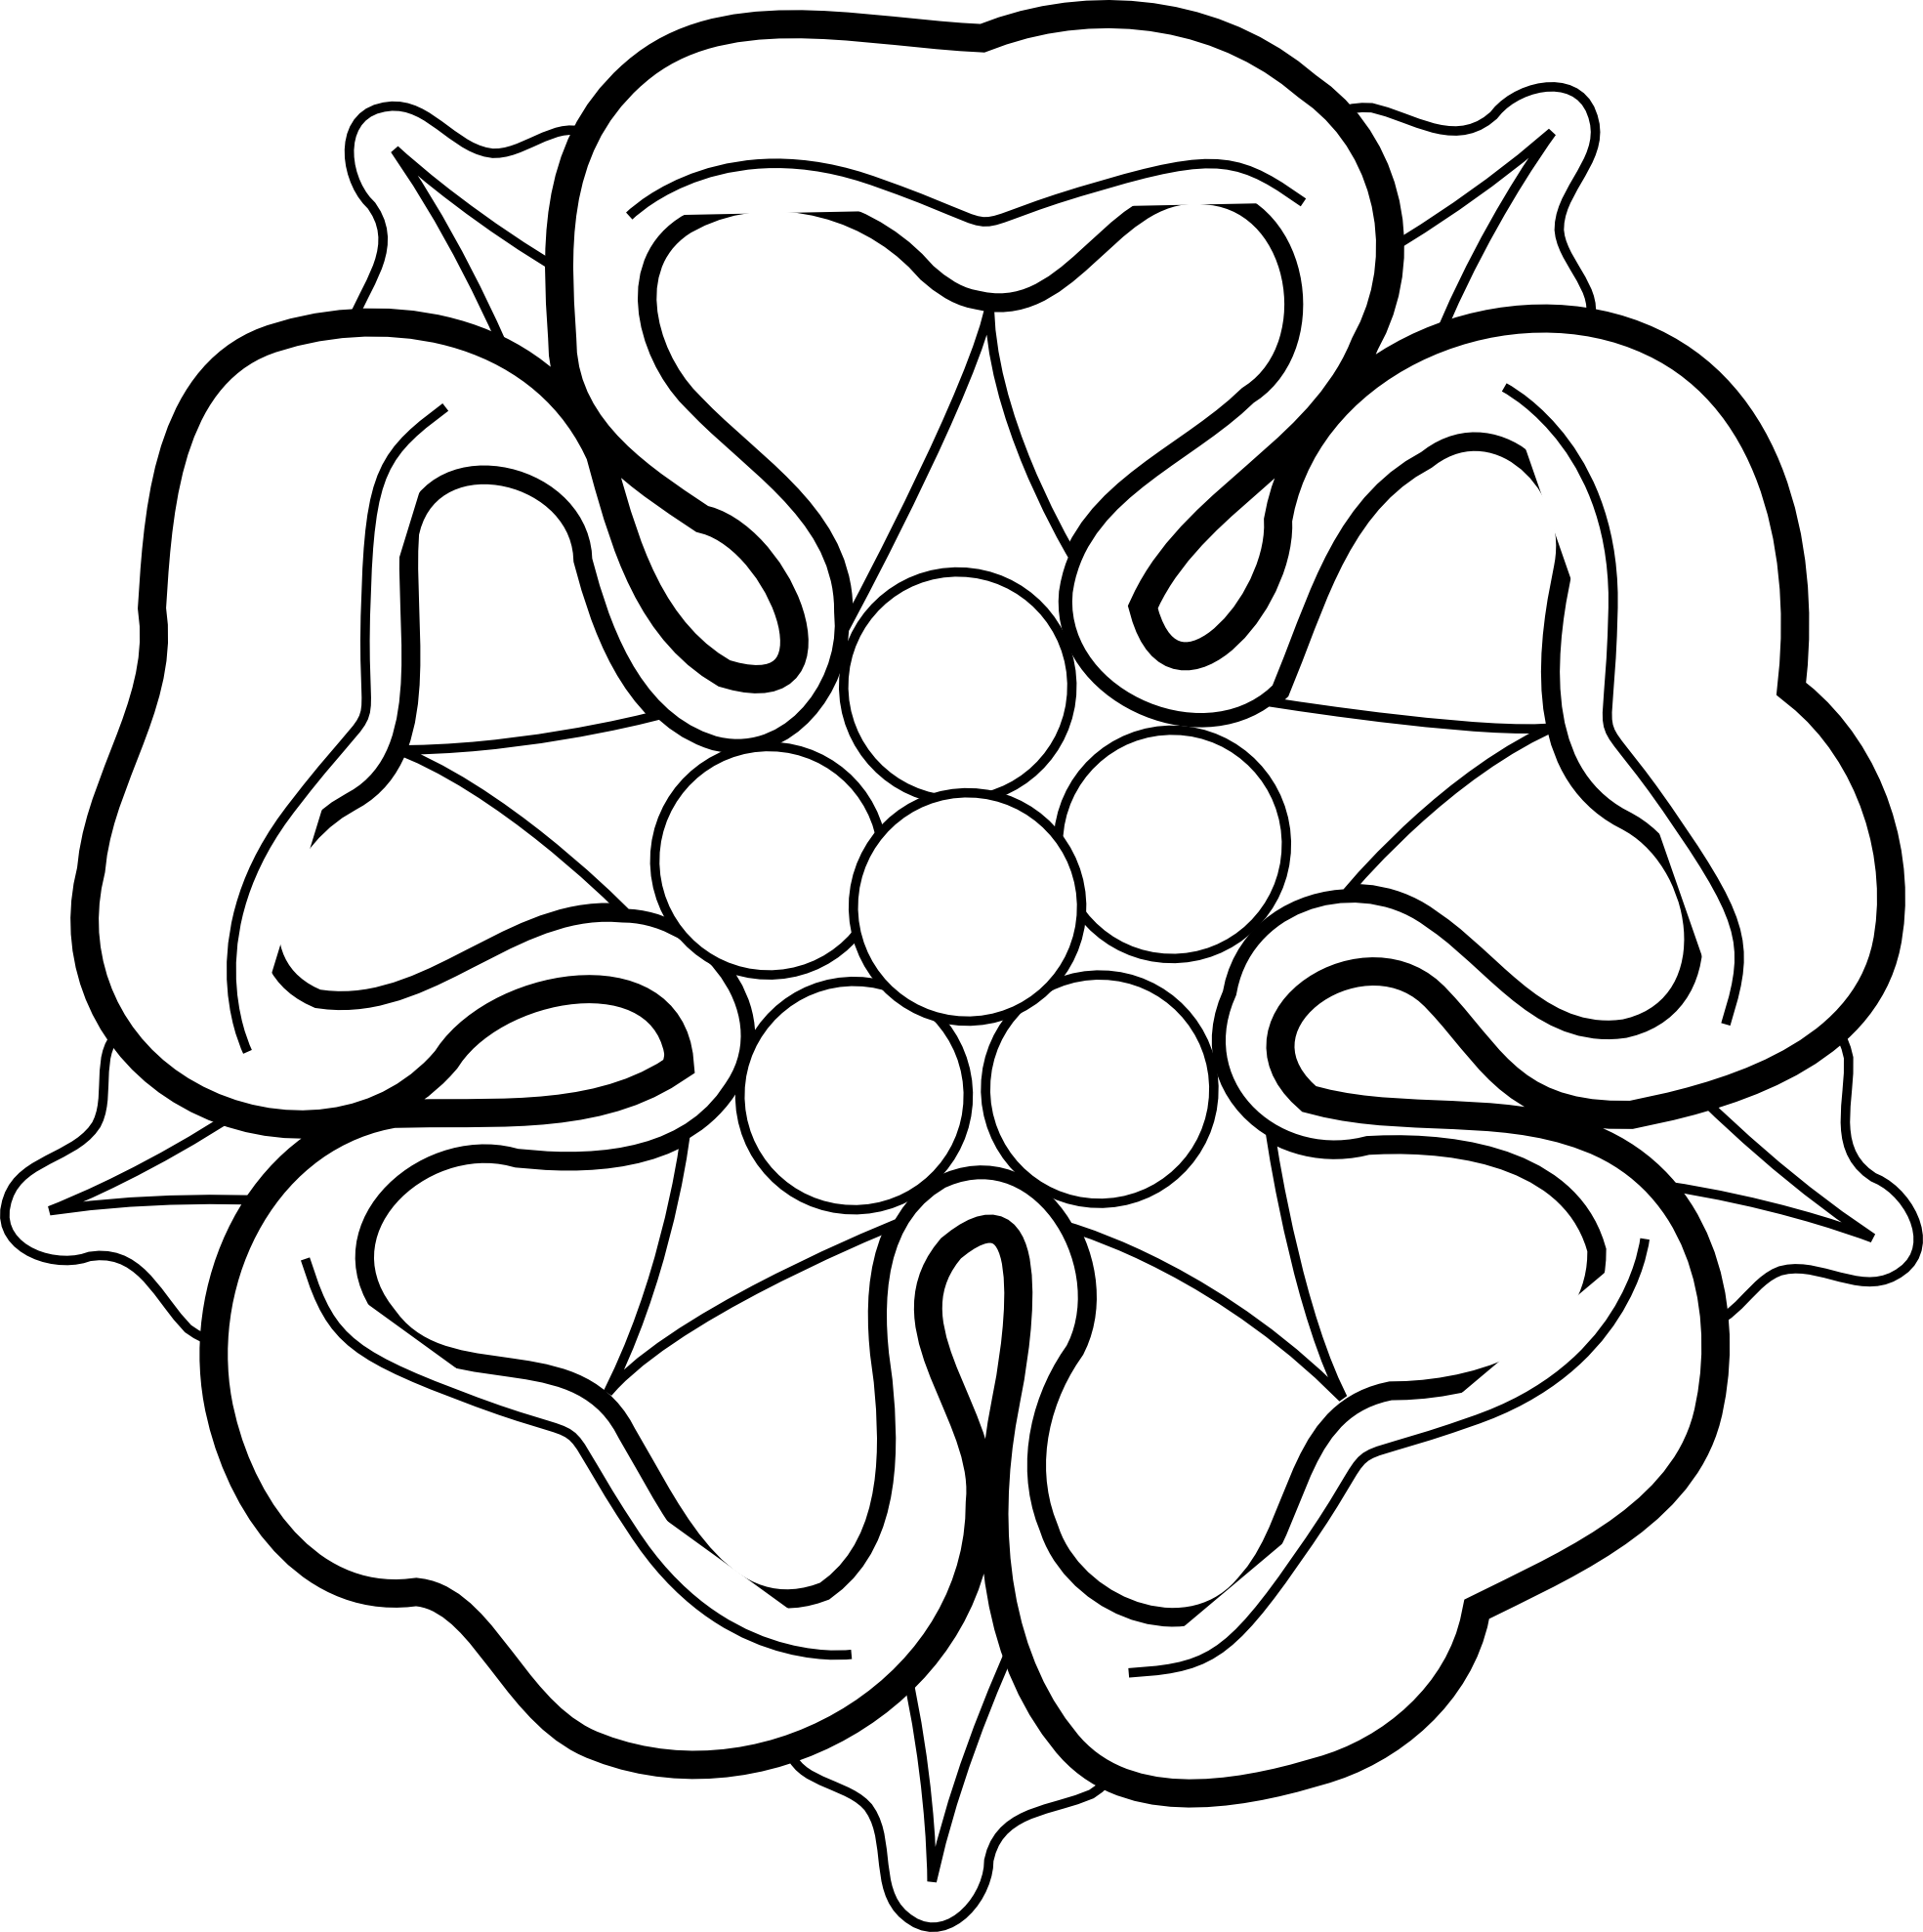 Line Art For Coloring : Drawings of flowers in black and white clipart best